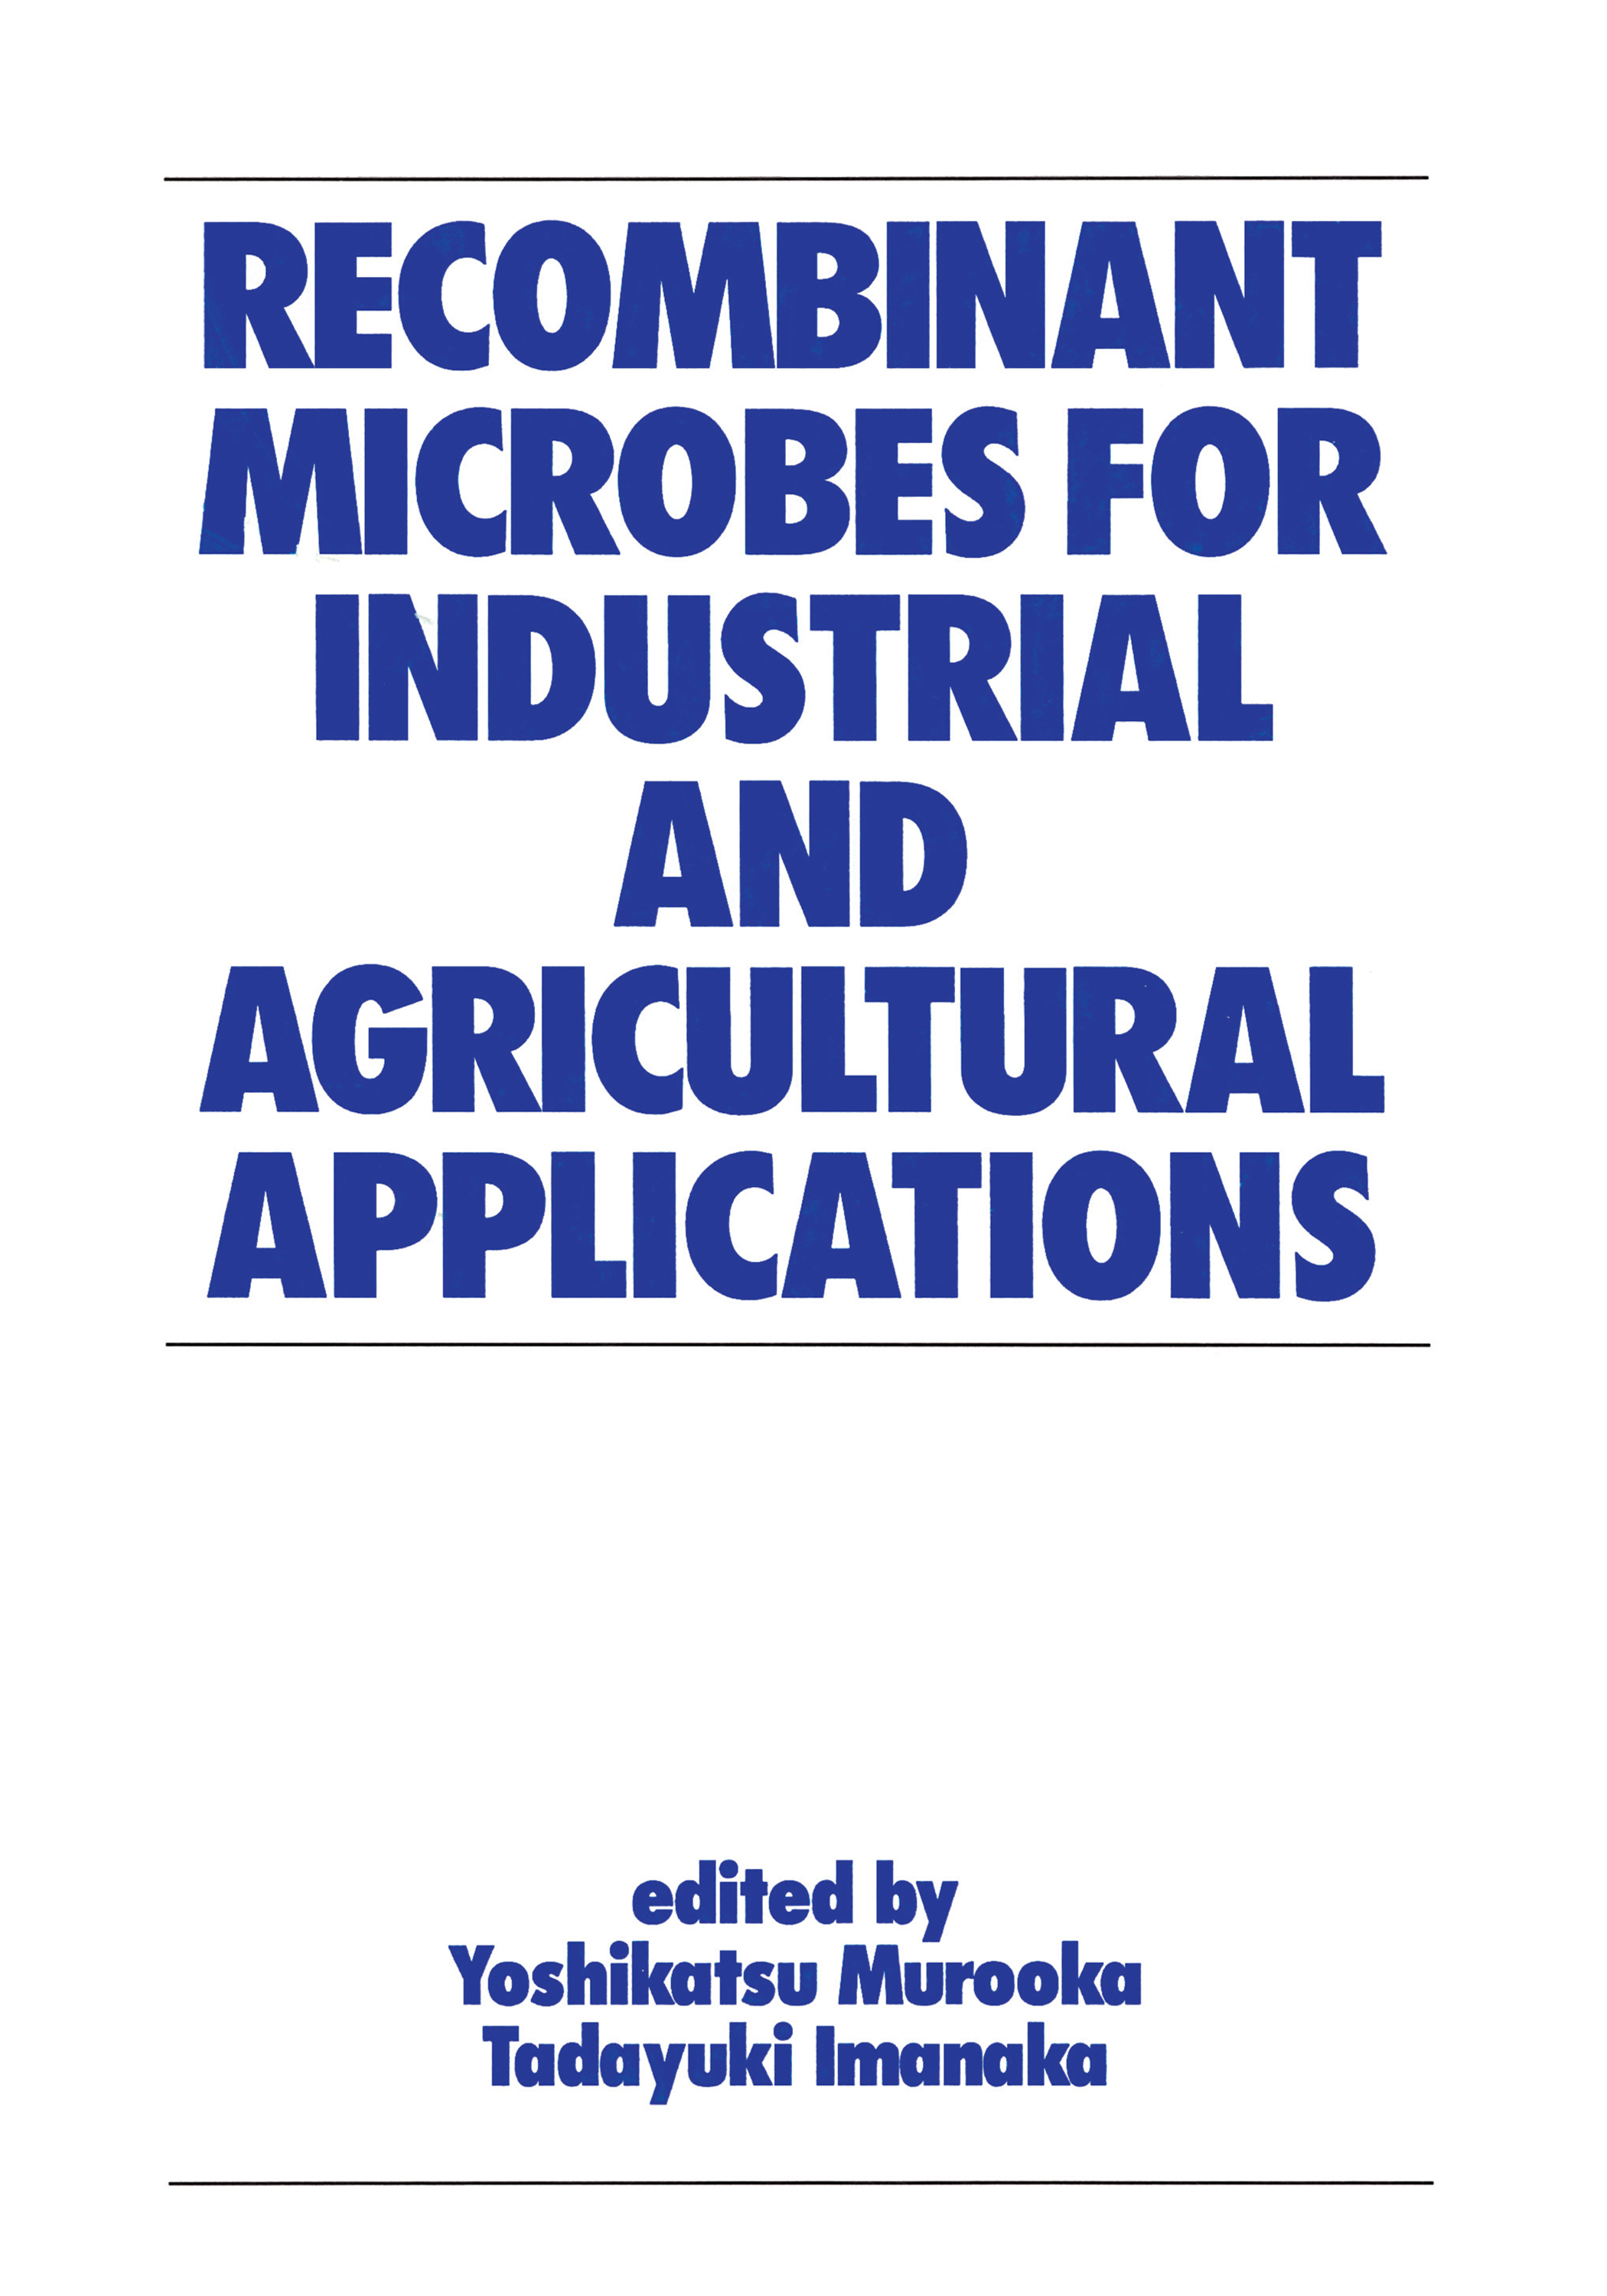 Regulation and Safety of Recombinant Microorganisms